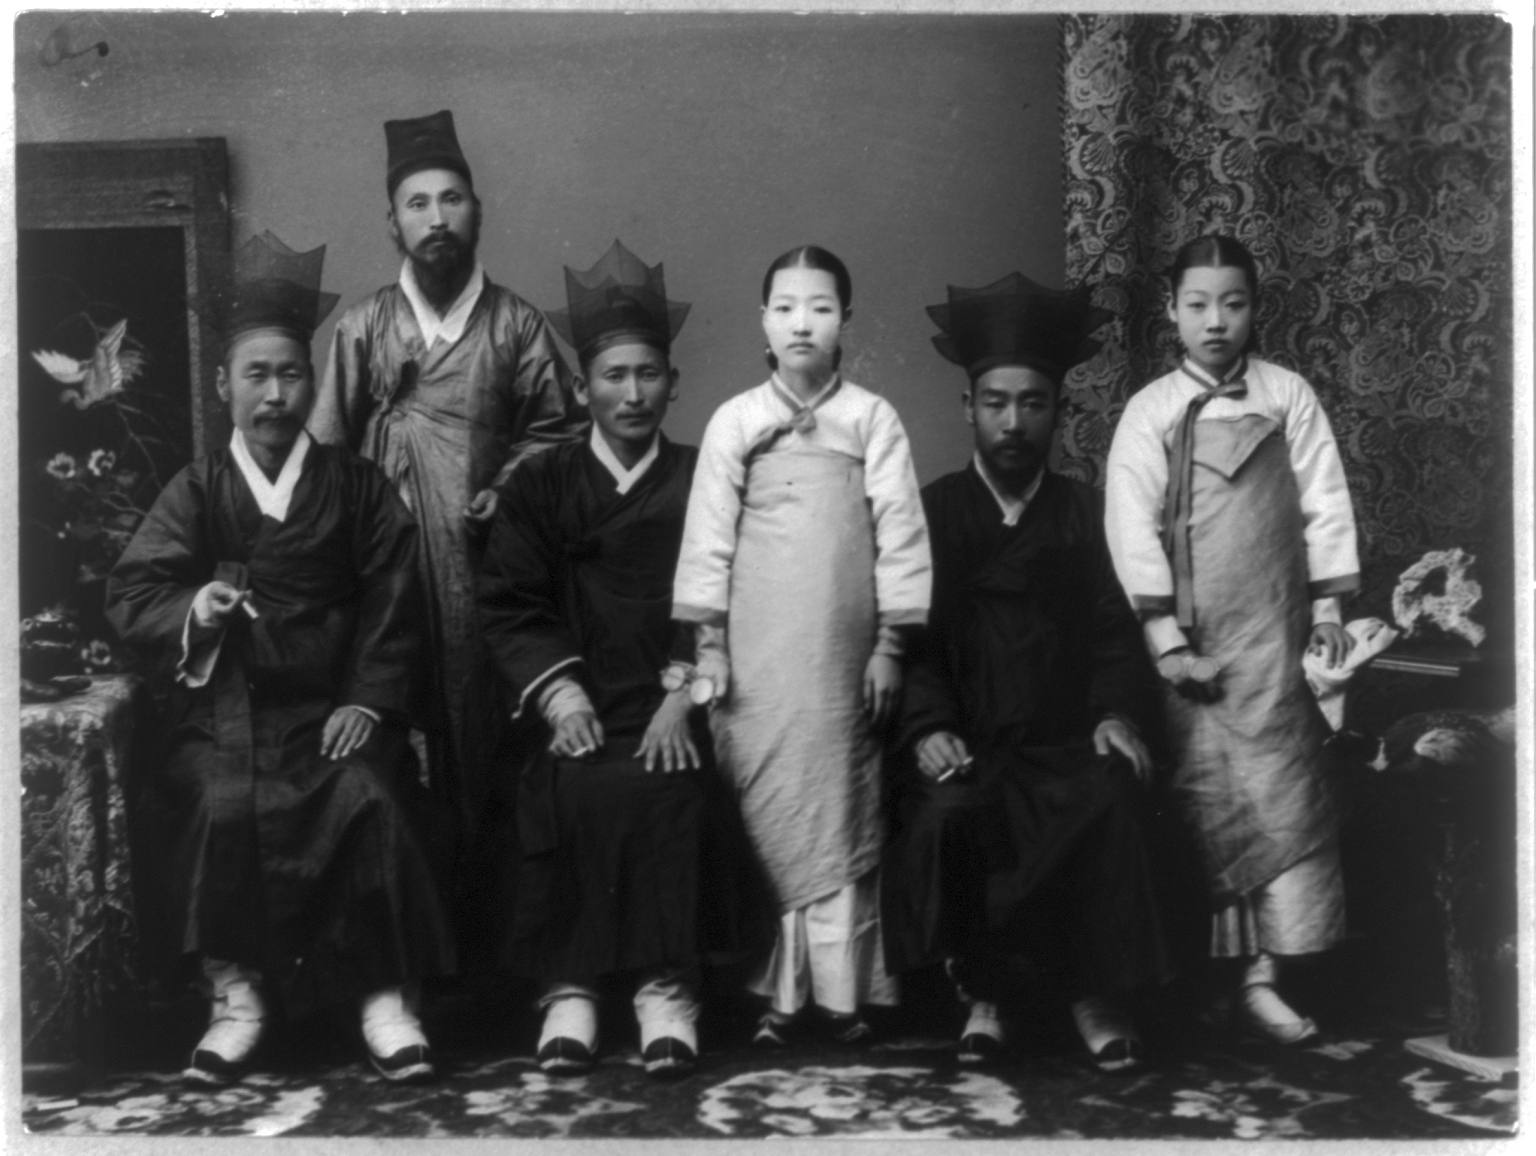 The men wear several different styles of traditional Korean hats.